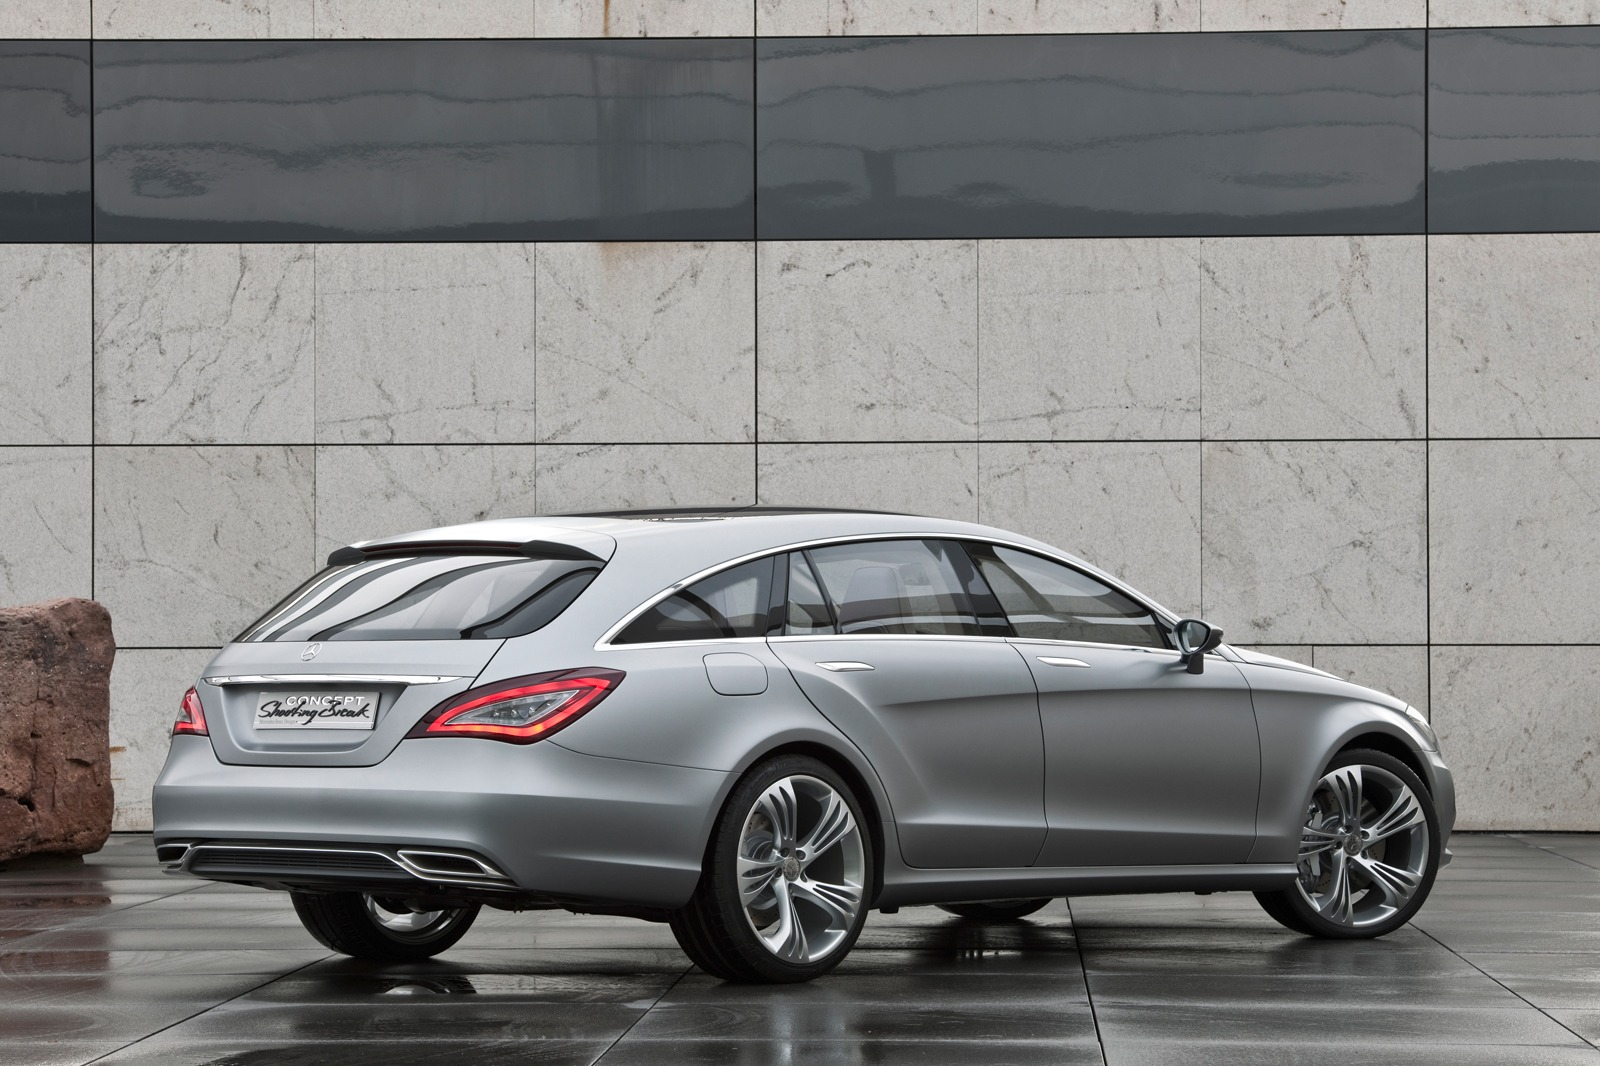 Mercedes-CLS-Shooting-Brake-Concept-2.jpg (1600×1066)